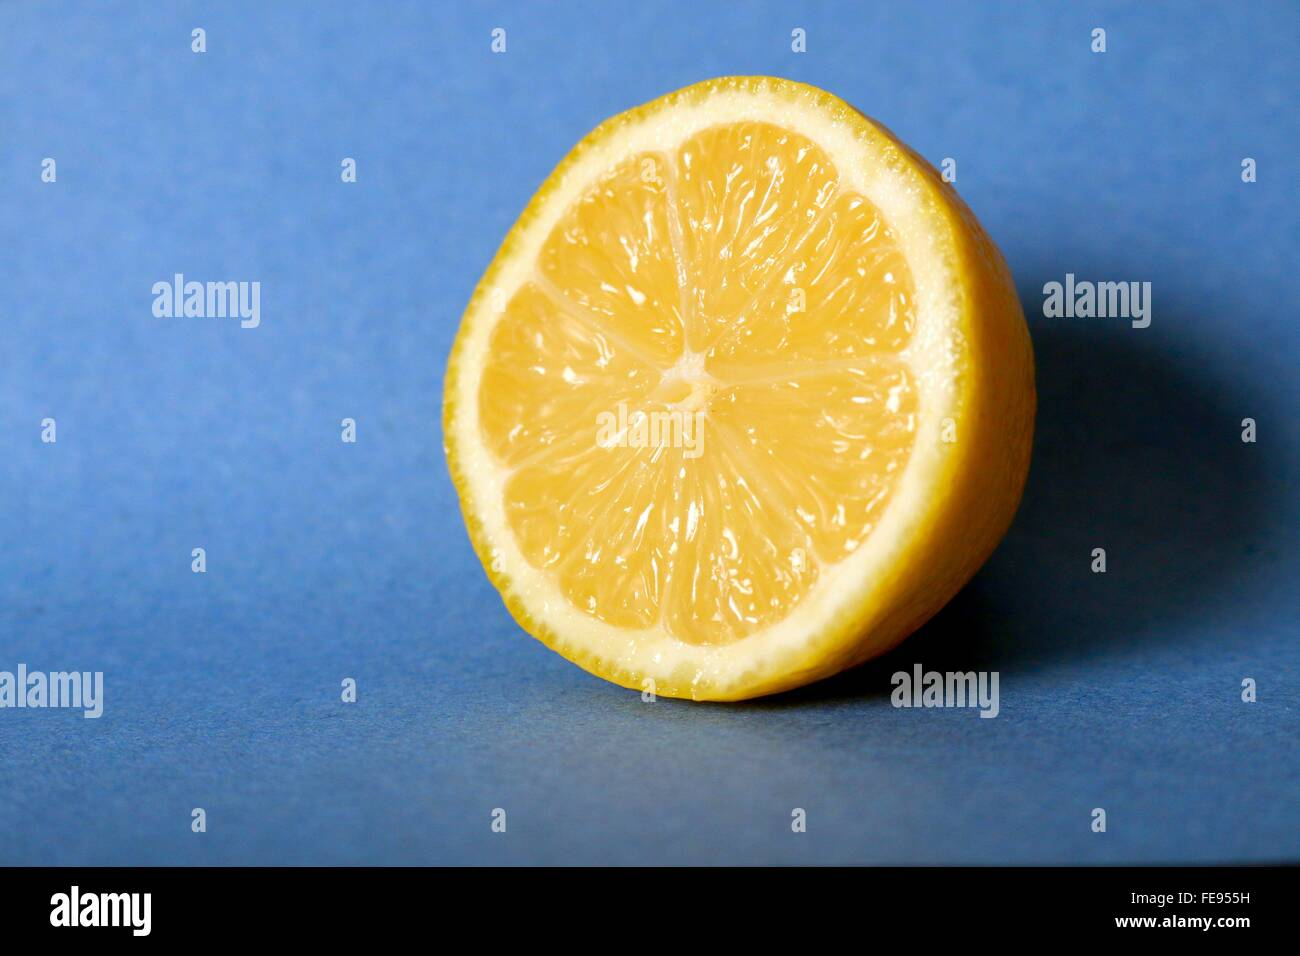 Close-Up Of Lime Against Blue Table - Stock Image